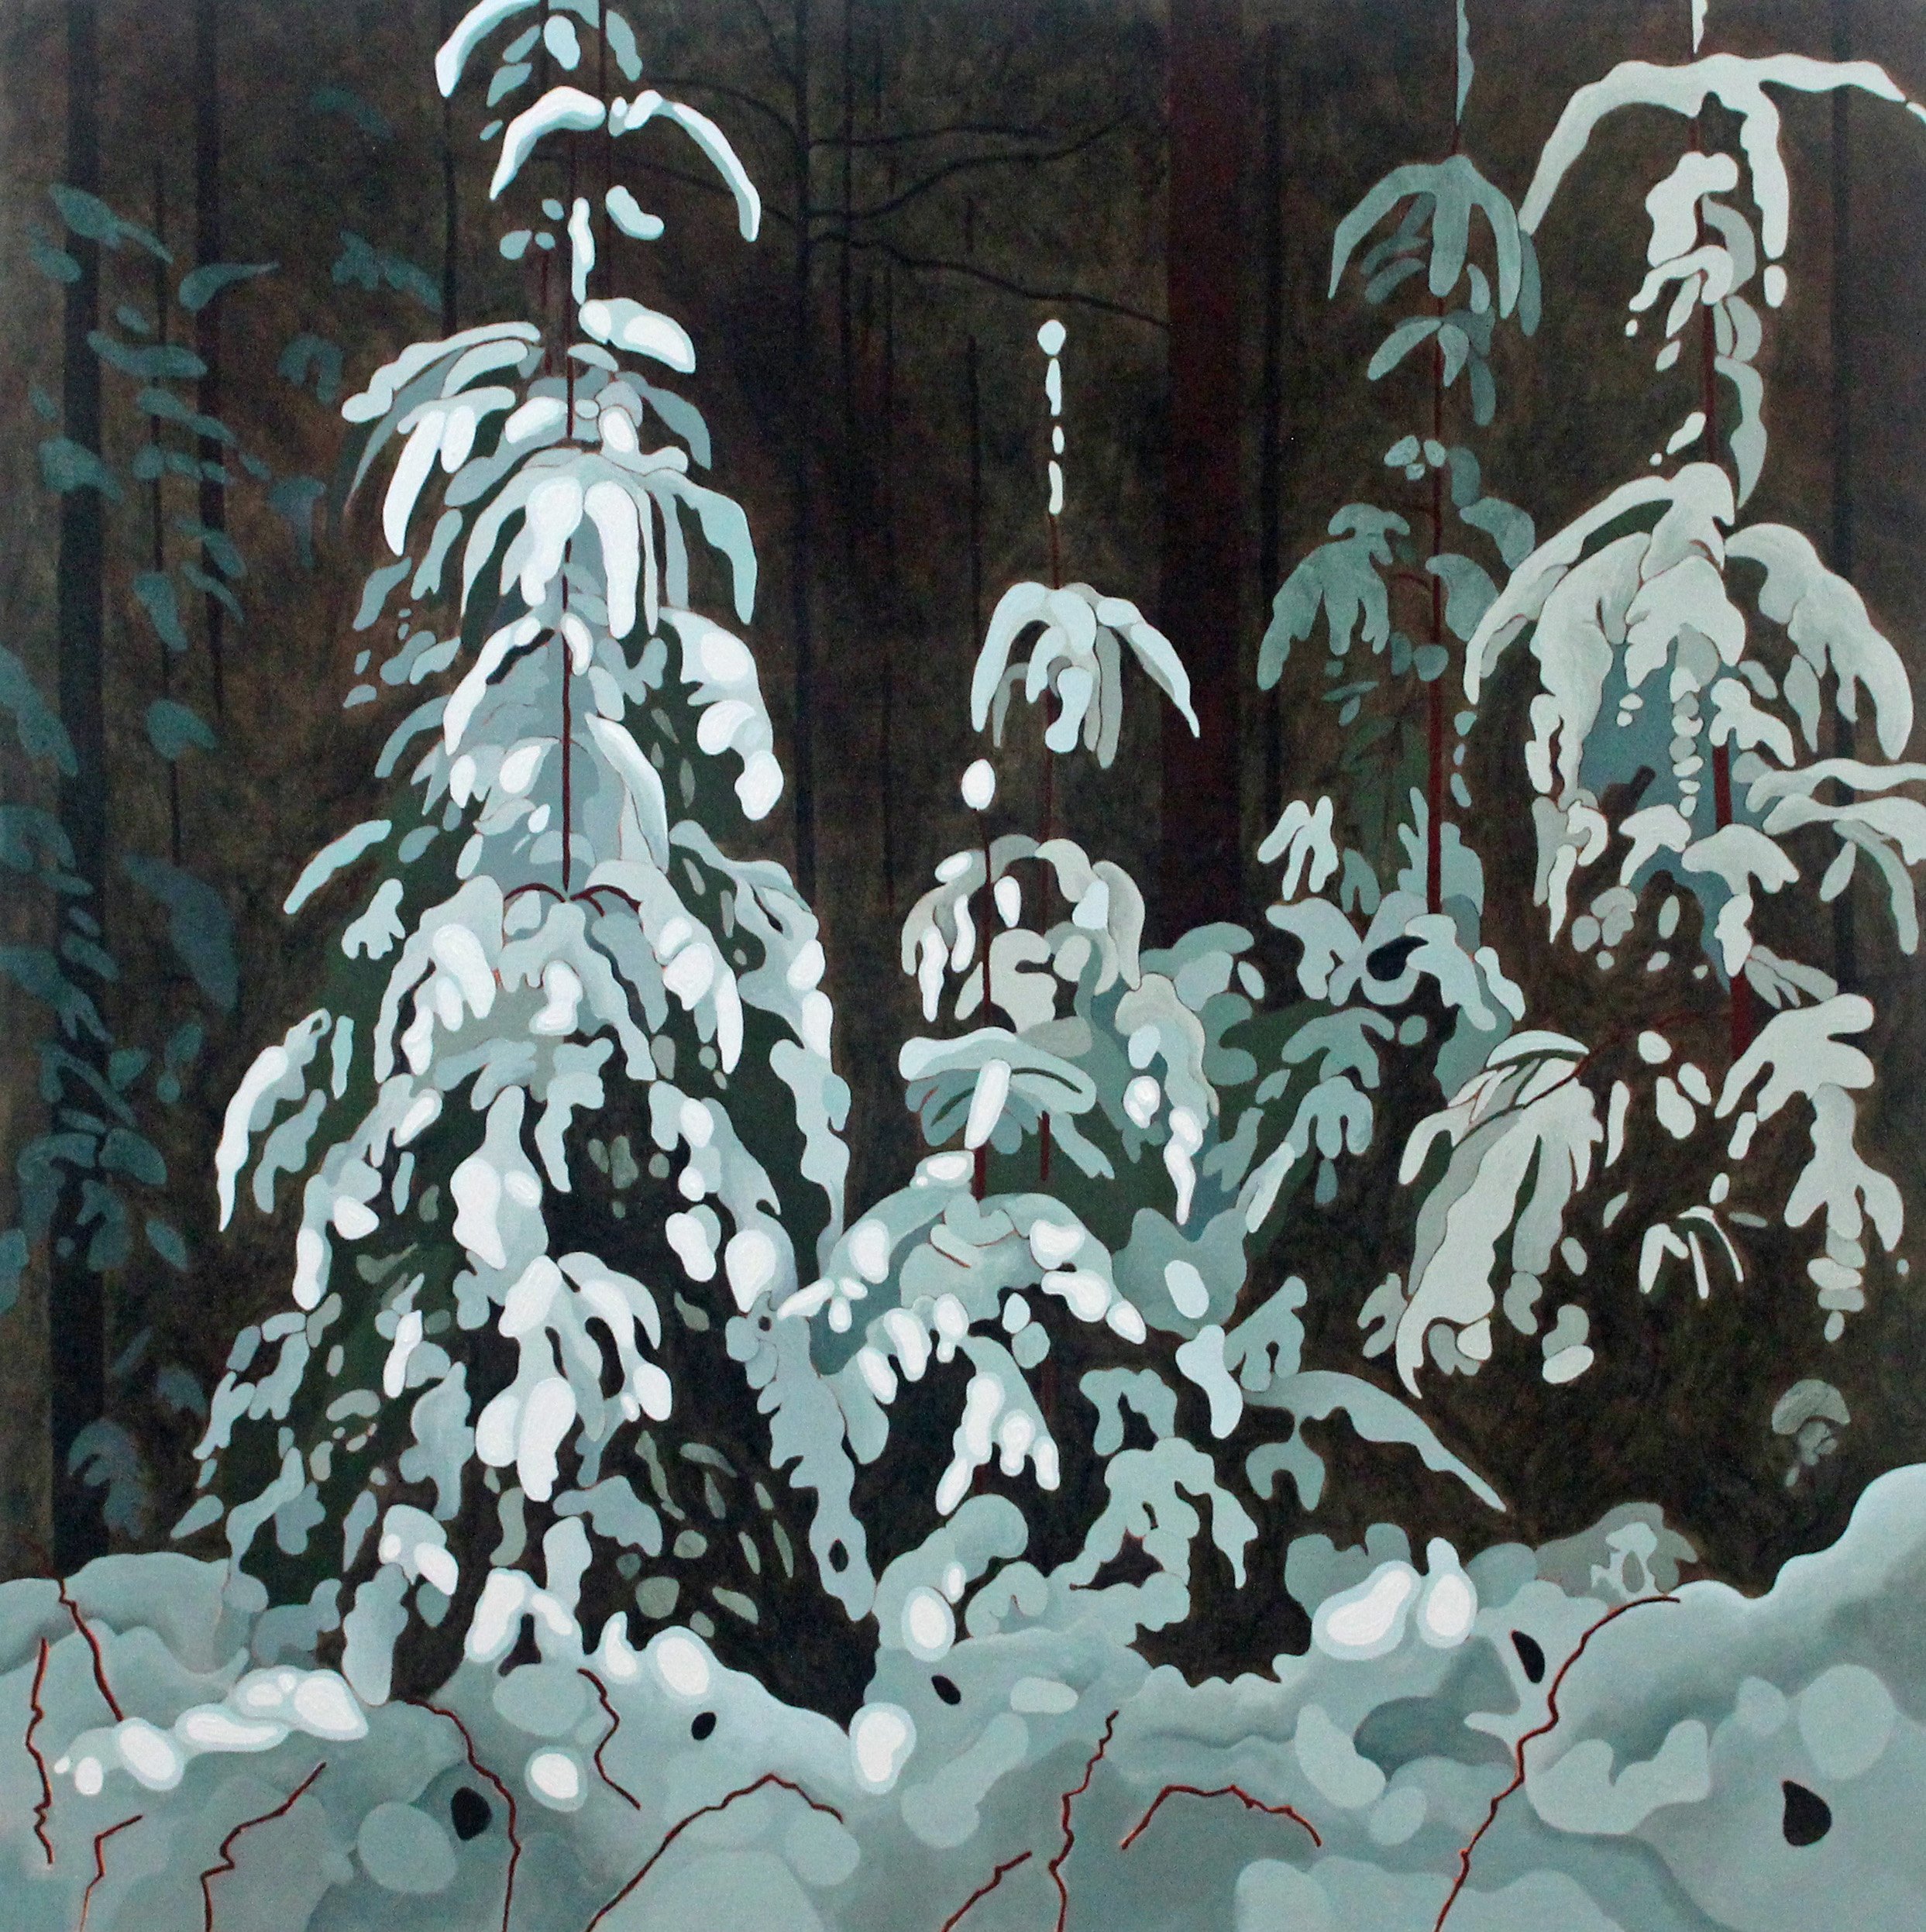 Snow Covered Spruce, 2020, 30 x 30, Acrylic on Canvas